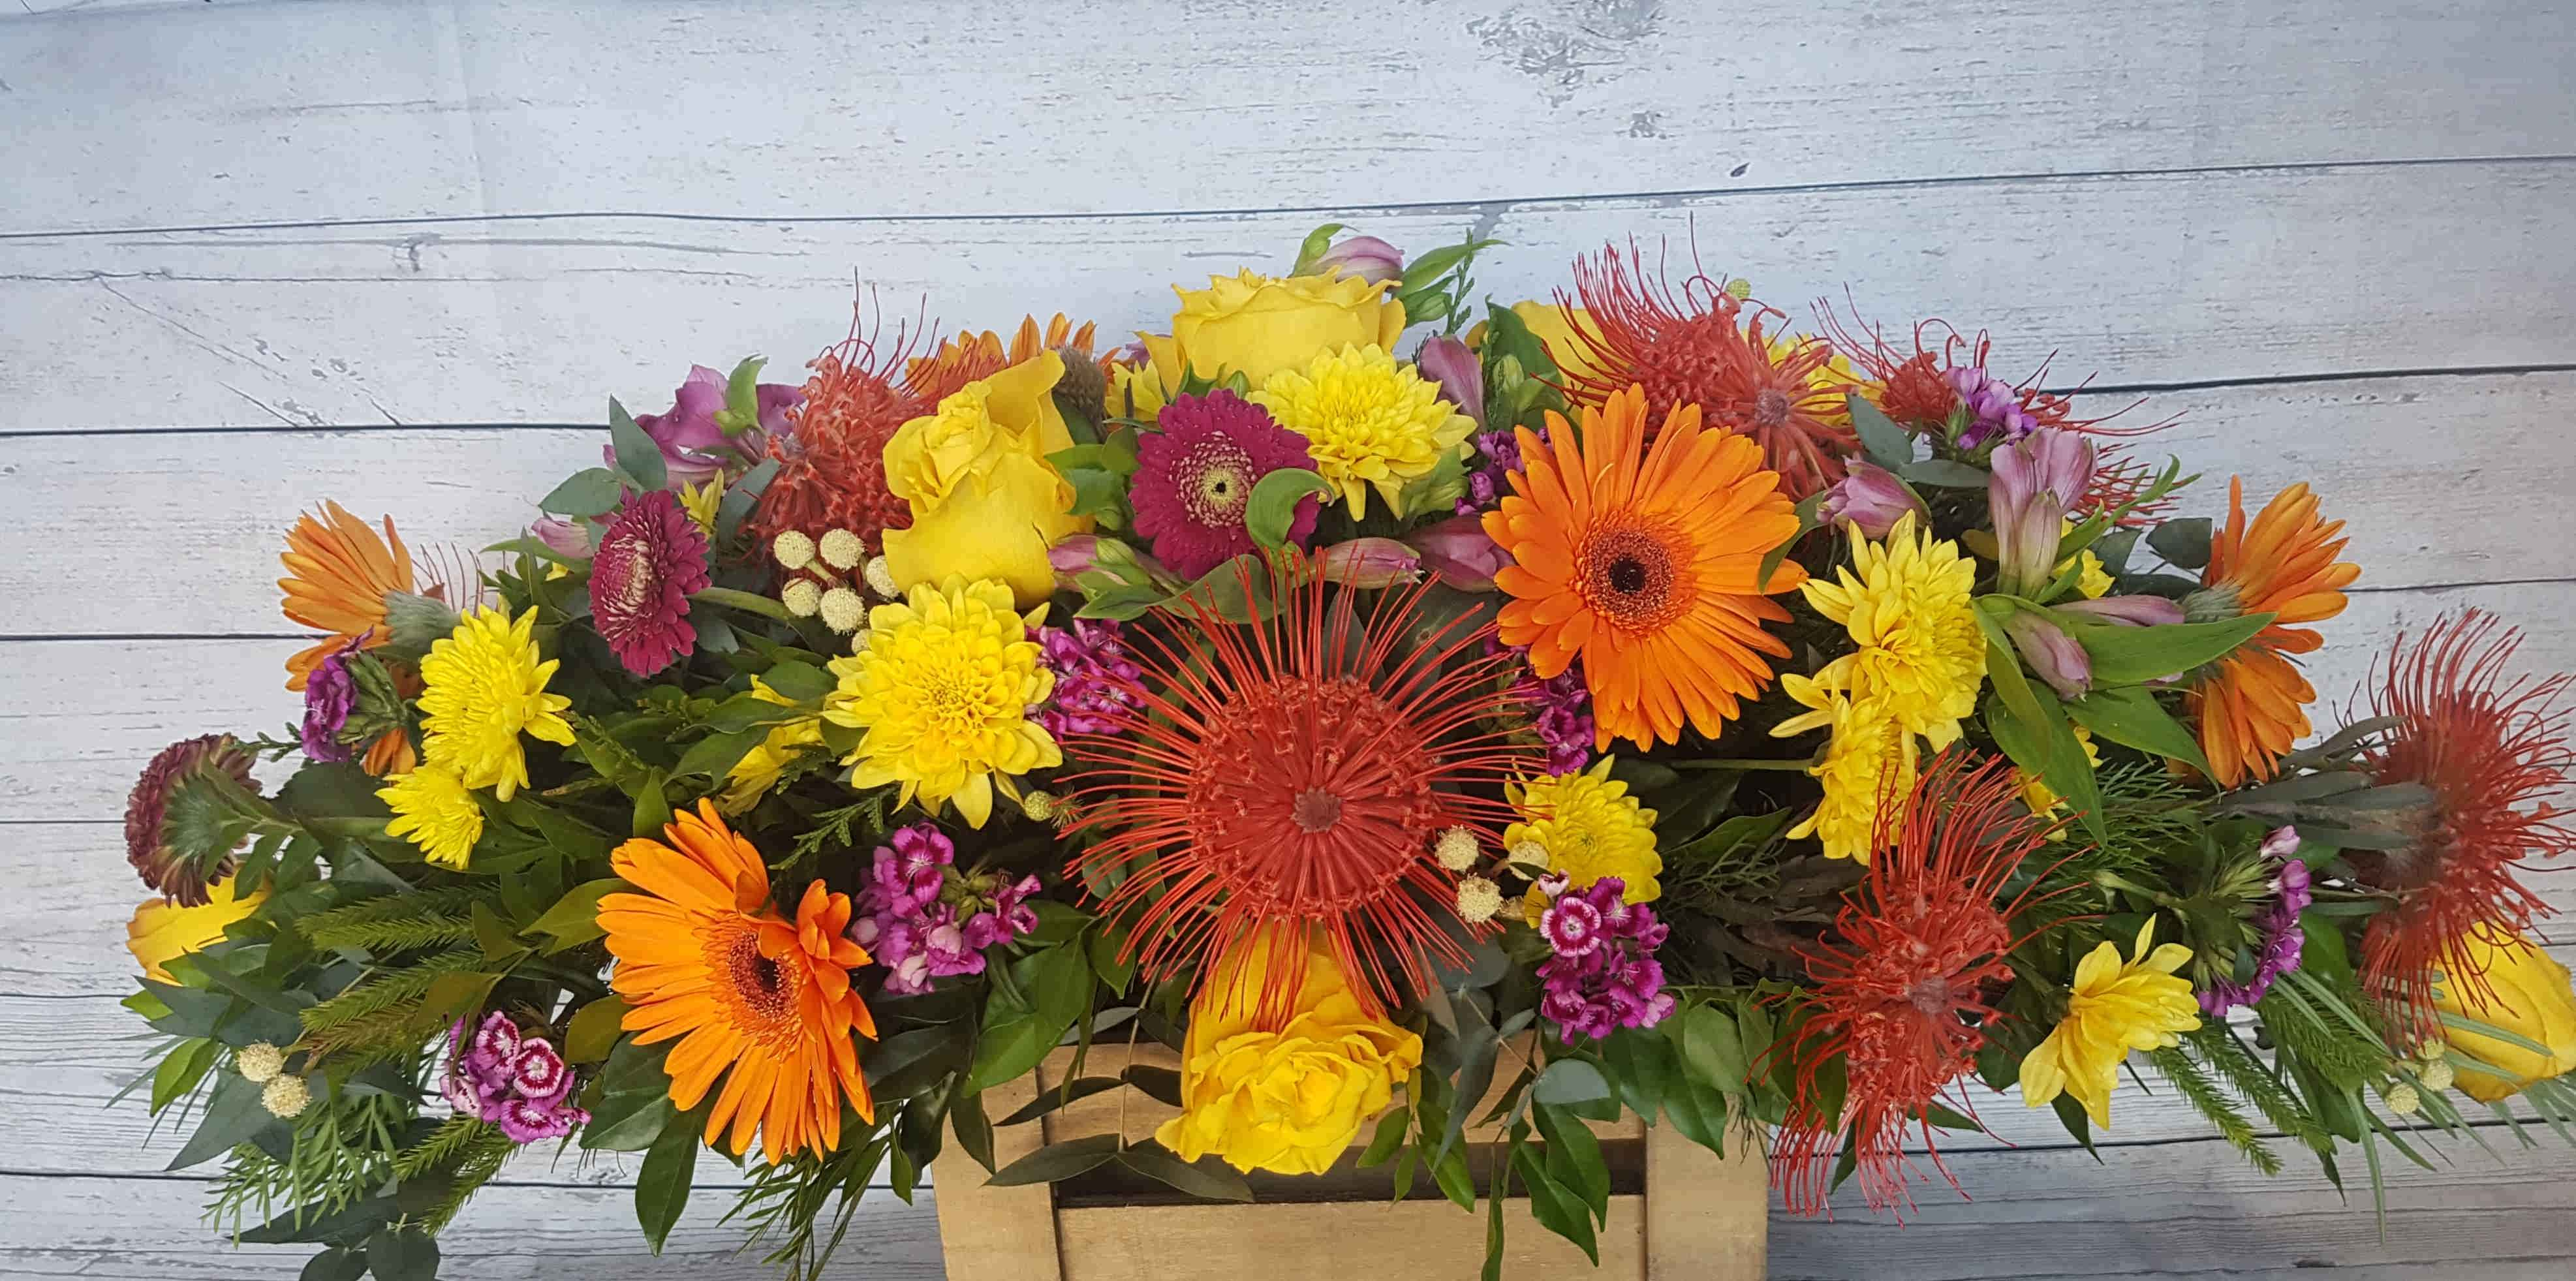 A SEASONAL MIX OF FLOWERS, WITH  A BRIGHT COLOUR PALETTE.